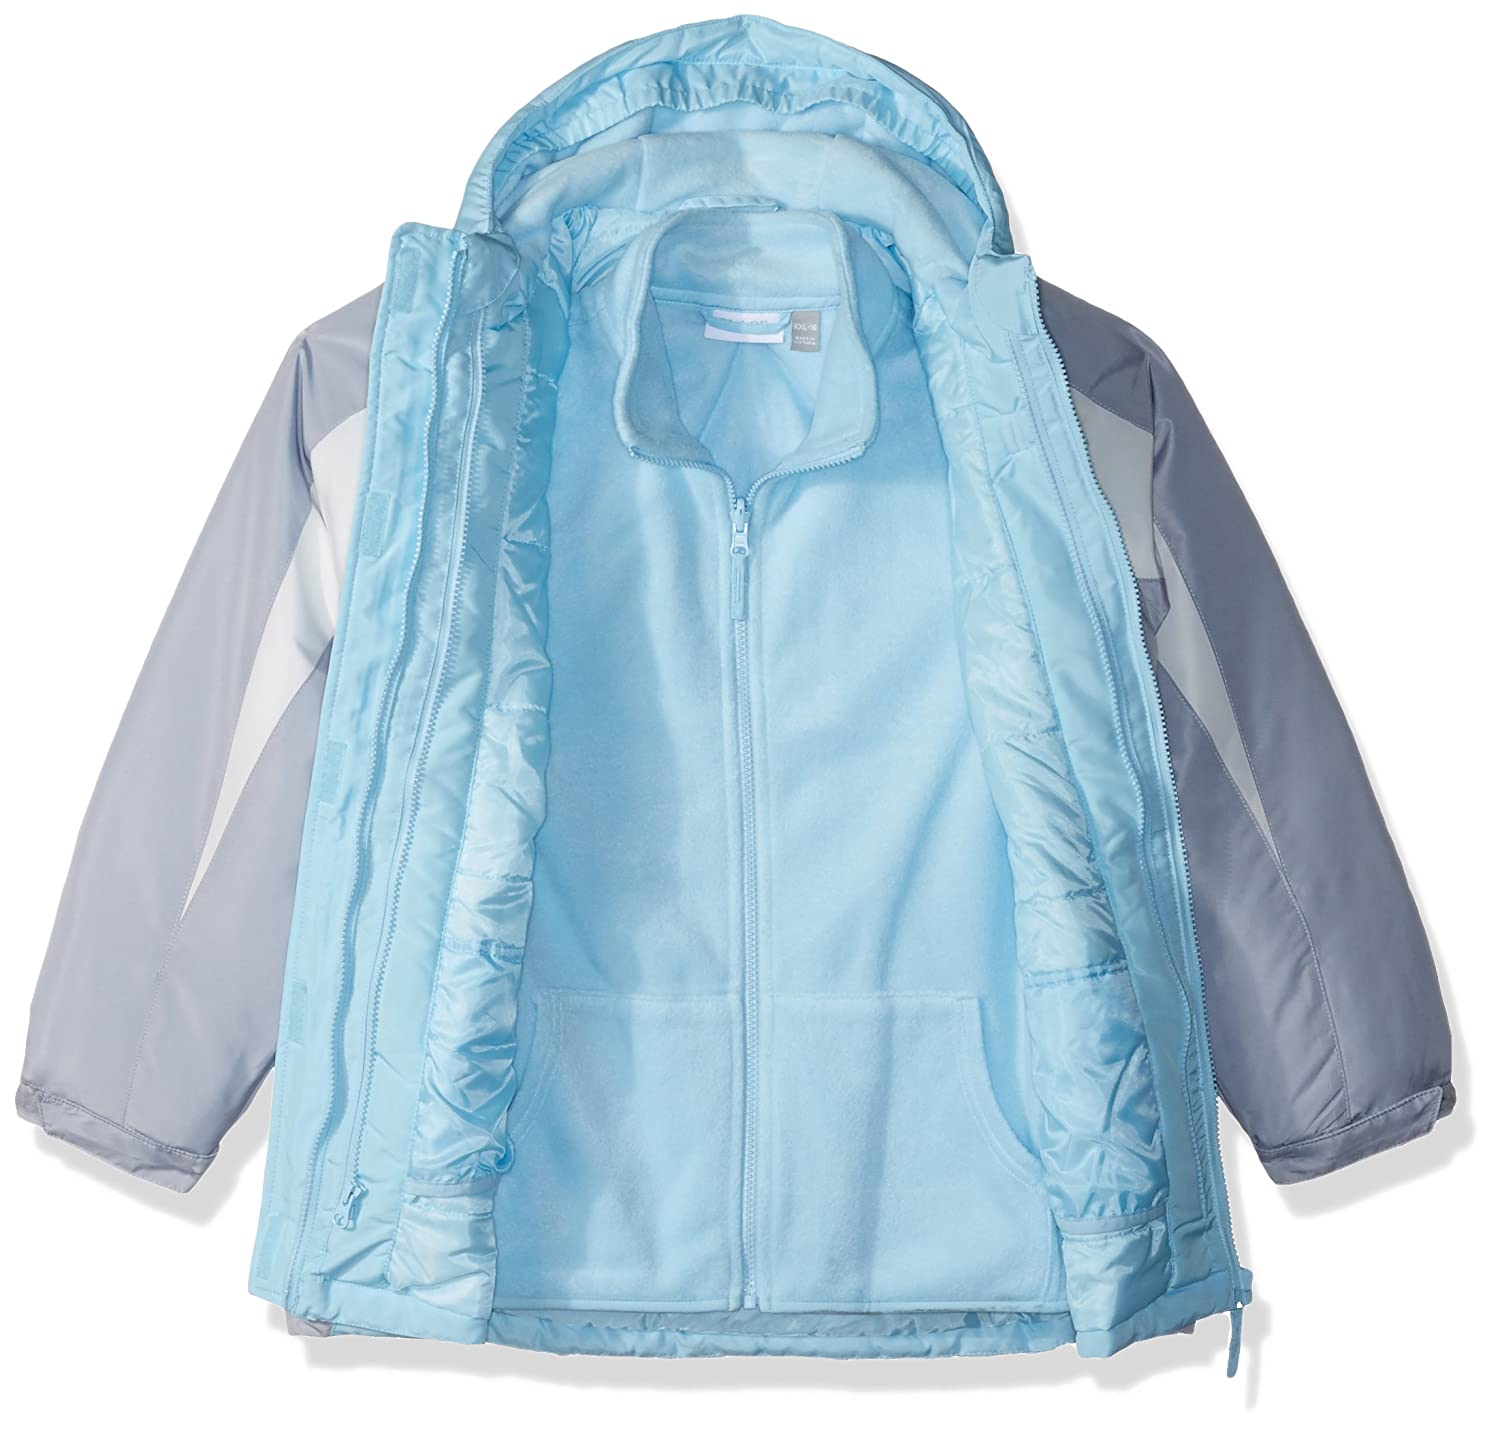 The Childrens Place Big Girls Solid 3-in-1 Jacket